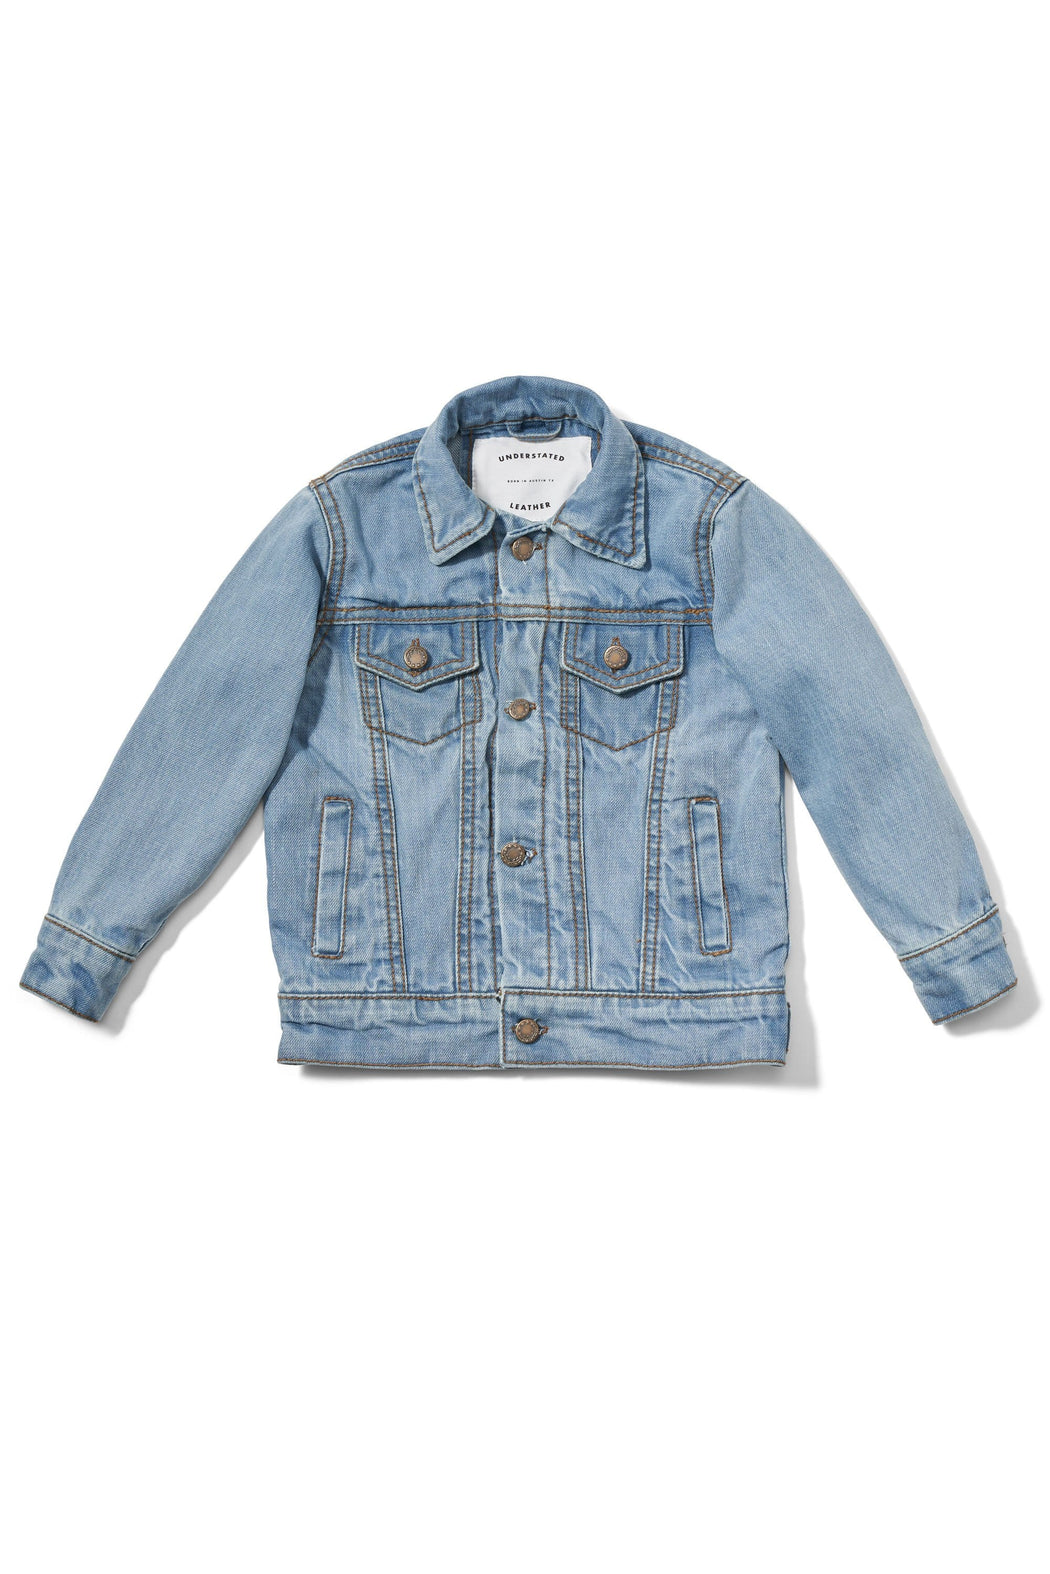 LIL DARLIN DENIM BABY JACKET